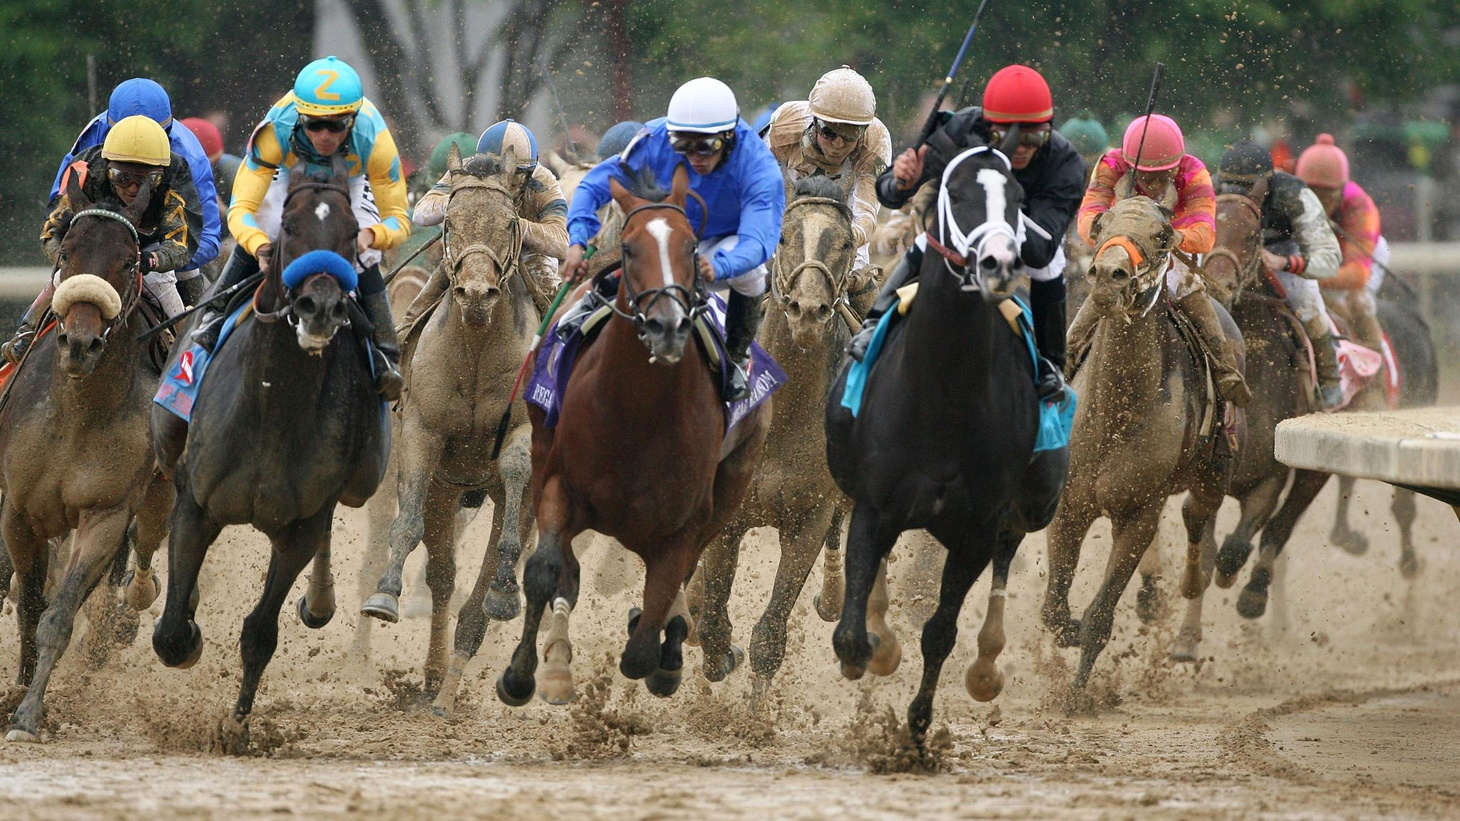 The Kentucky Derby, set to run this Saturday, as is the custom every first Saturday in May, is the oldest continuous sporting event in our country. Since the first settlers stepped onto the Bluegrass fields of Kentucky, horse racing…and horse breeding…have been the heart and soul of the region. If you have a chance to visit the bucolic rolling hills and majestic fenced horse farms that stretch for many miles toward every compass point from Lexington, you'll quickly discover the central conversation, Derby time or otherwise, is bloodlines. More than the furlong track times, what's crucial is which stallions are bred to which mares...